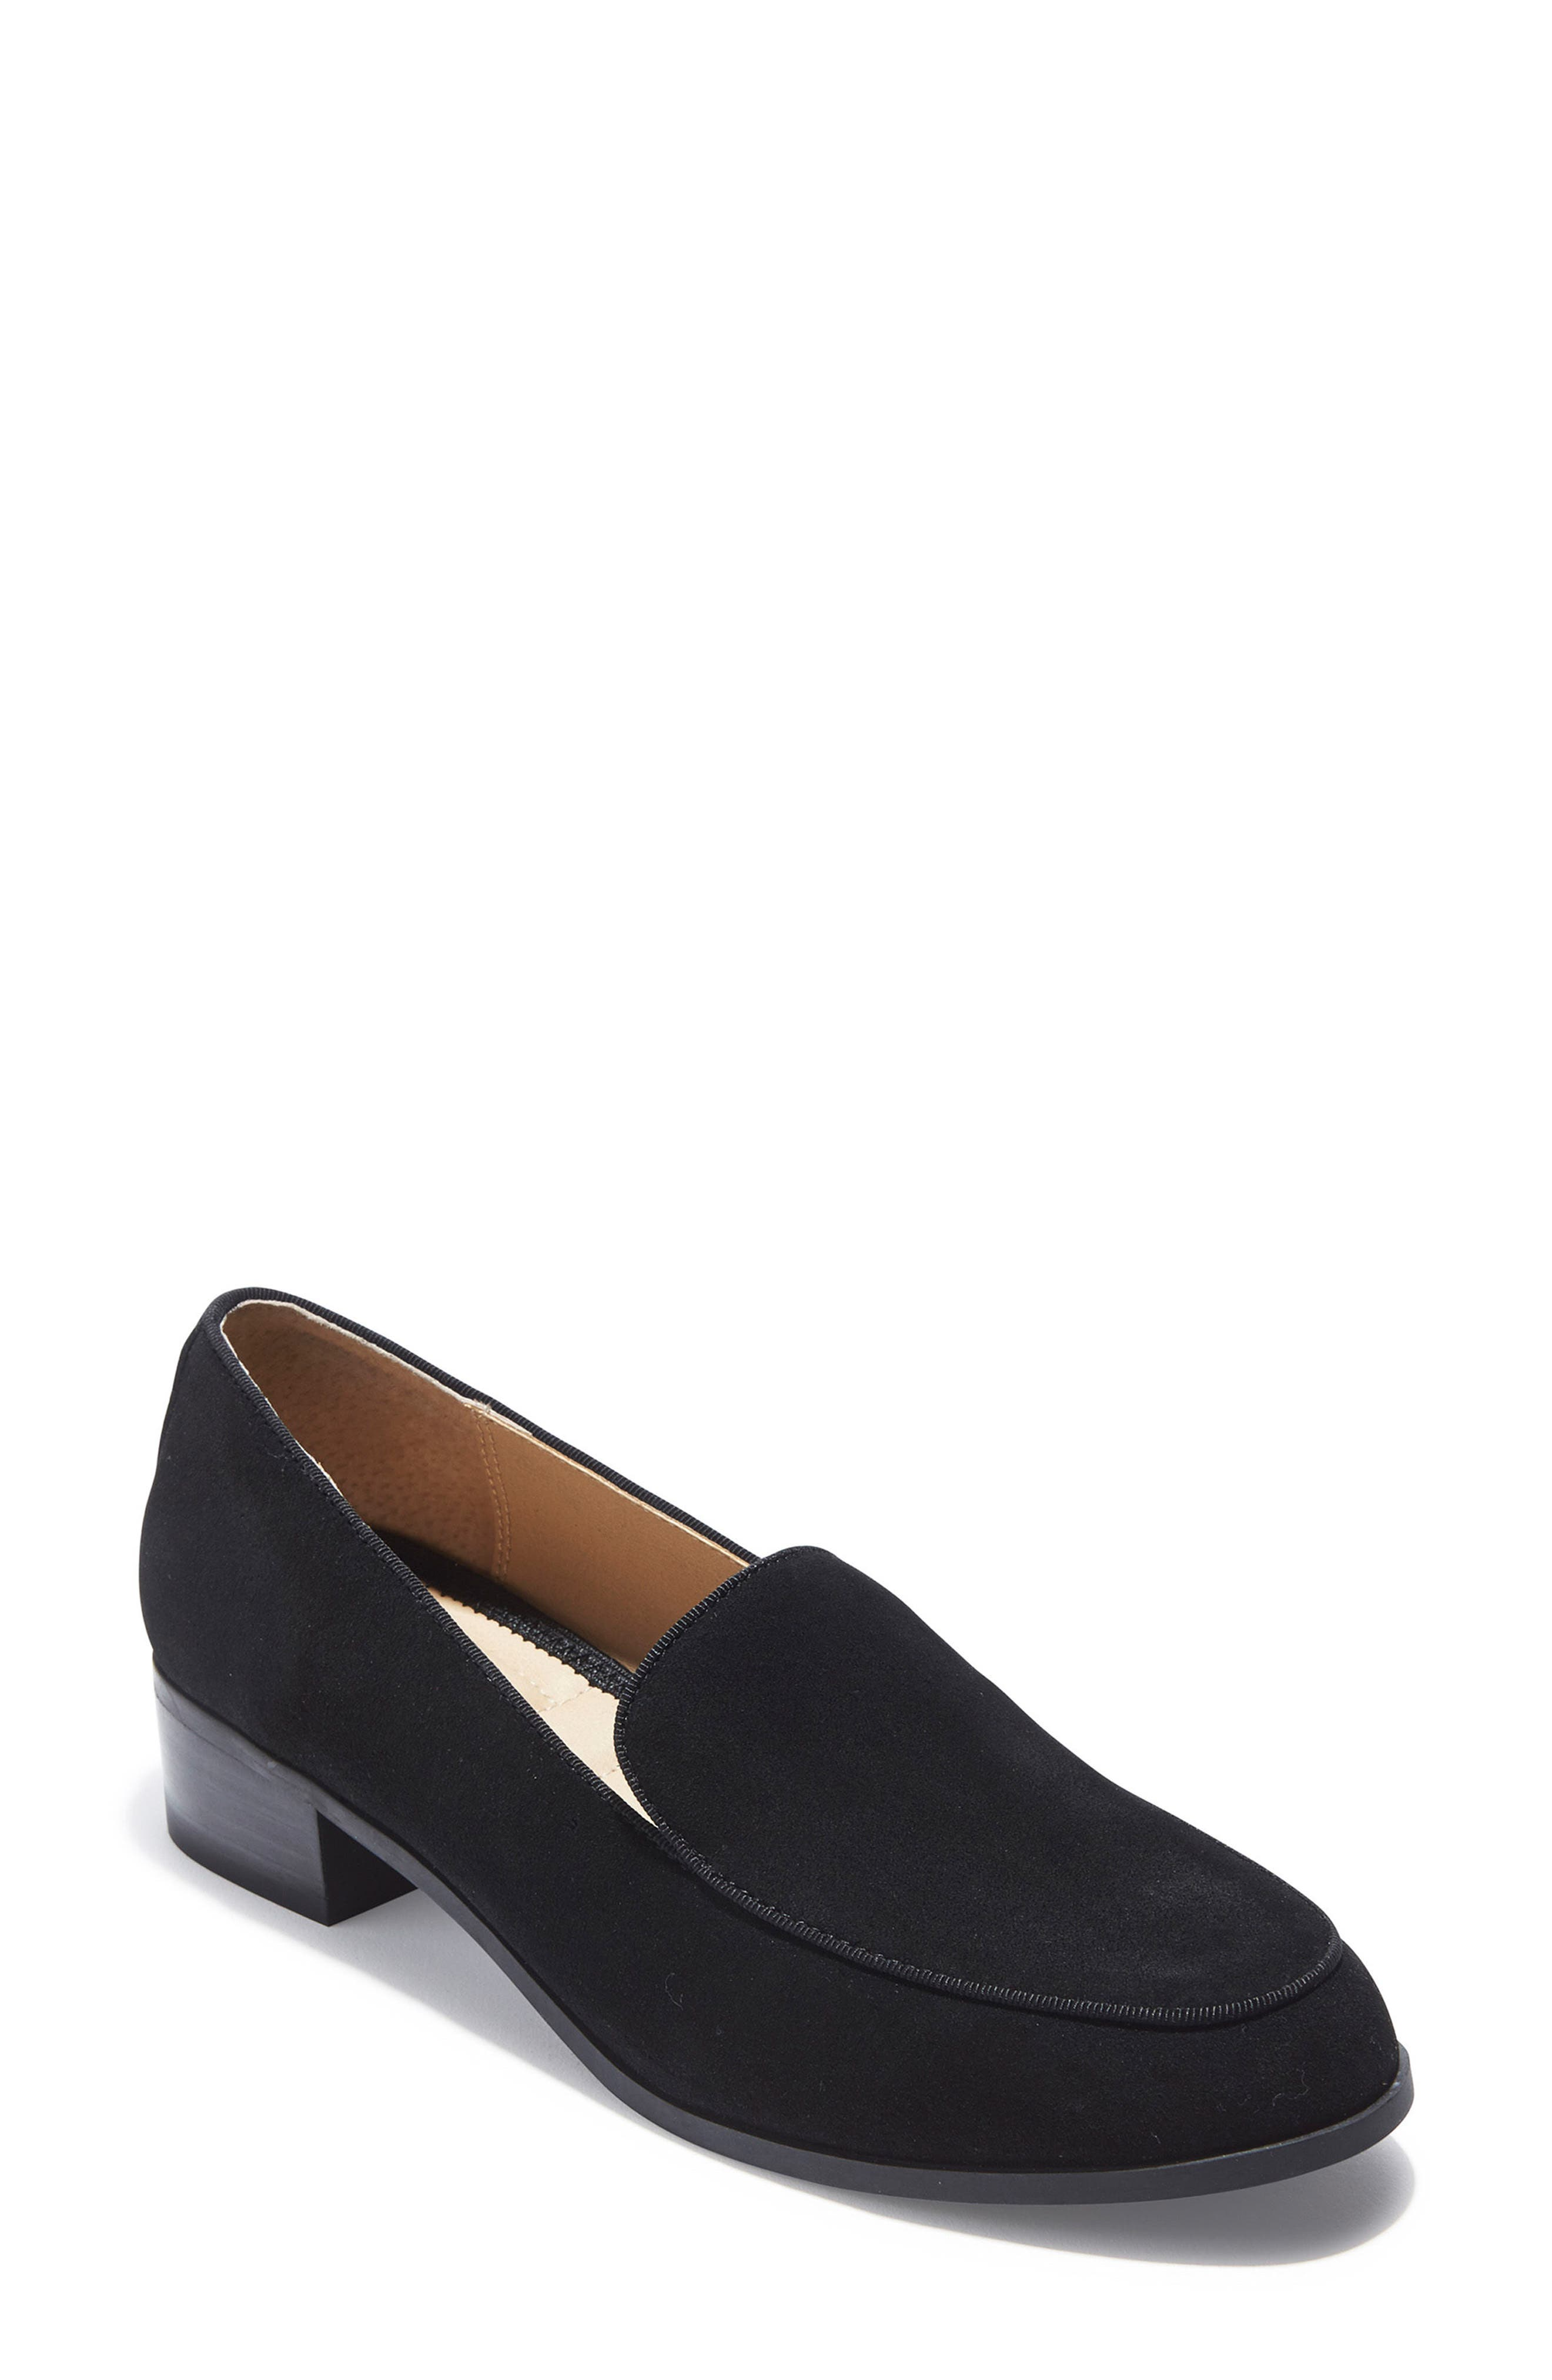 Jazzy Loafer,                             Main thumbnail 1, color,                             014